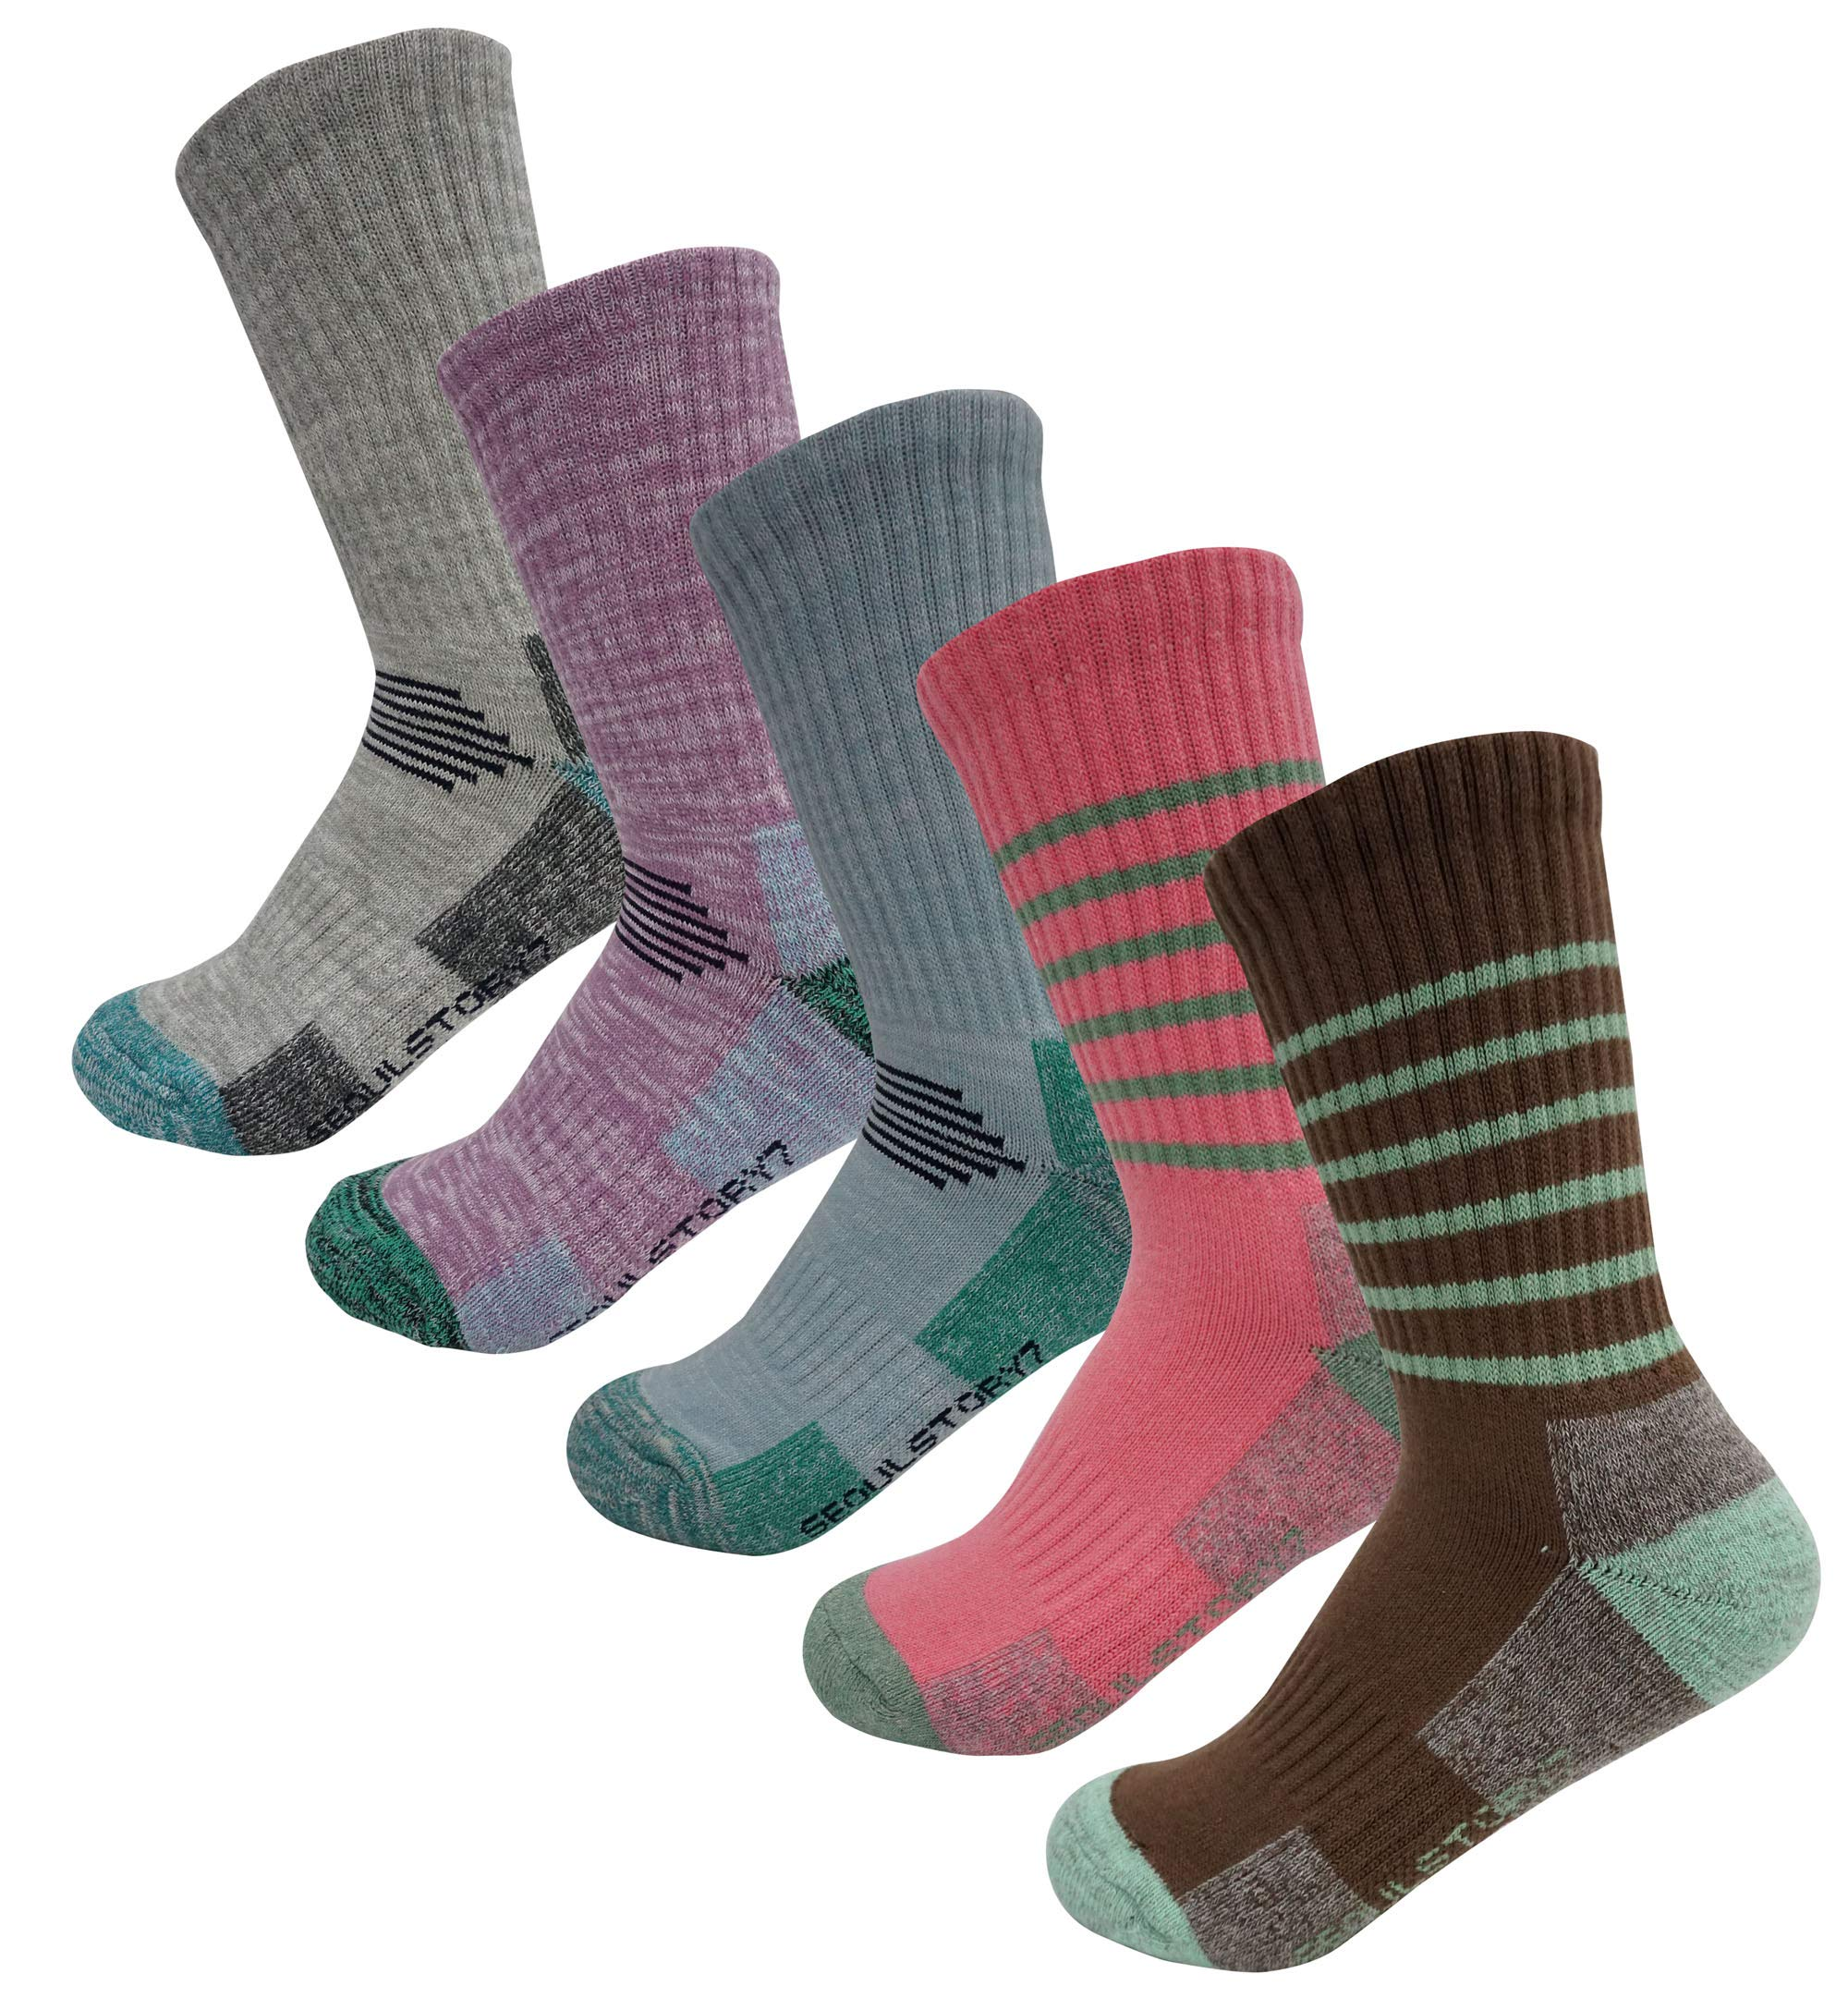 SEOULSTORY7 5Pack Women's Multi Performance Padded Hiking/Outdoor Crew Socks Gray/Purple/LightBlue/Thin Stripe Pink/Thin Stripe Brown Small by SEOULSTORY7